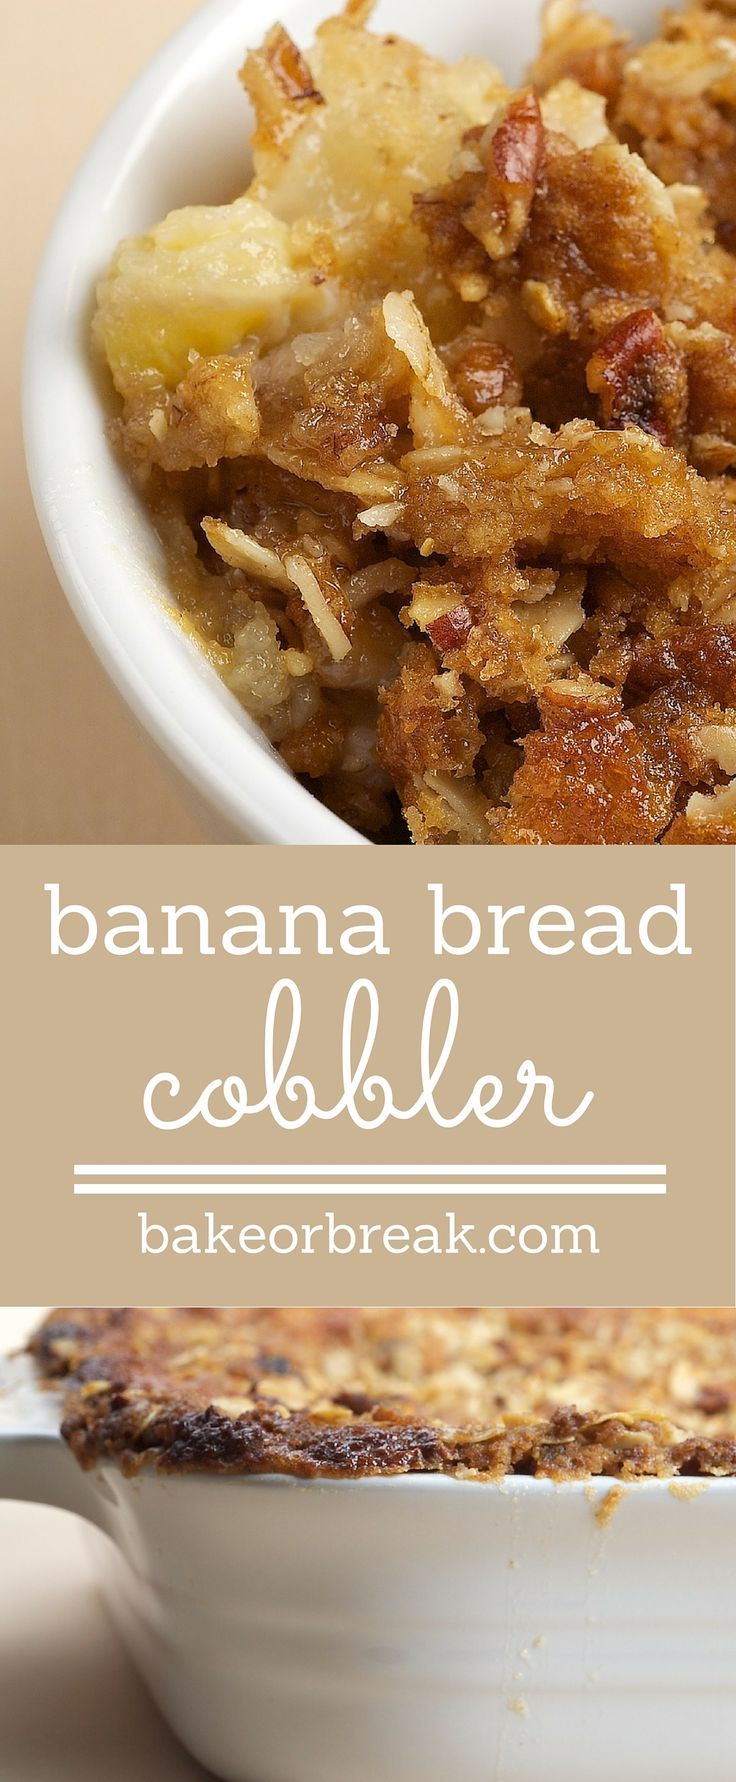 Banana Bread Cobbler turns the flavors of banana bread into a delicious dessert. Just top with ice cream!